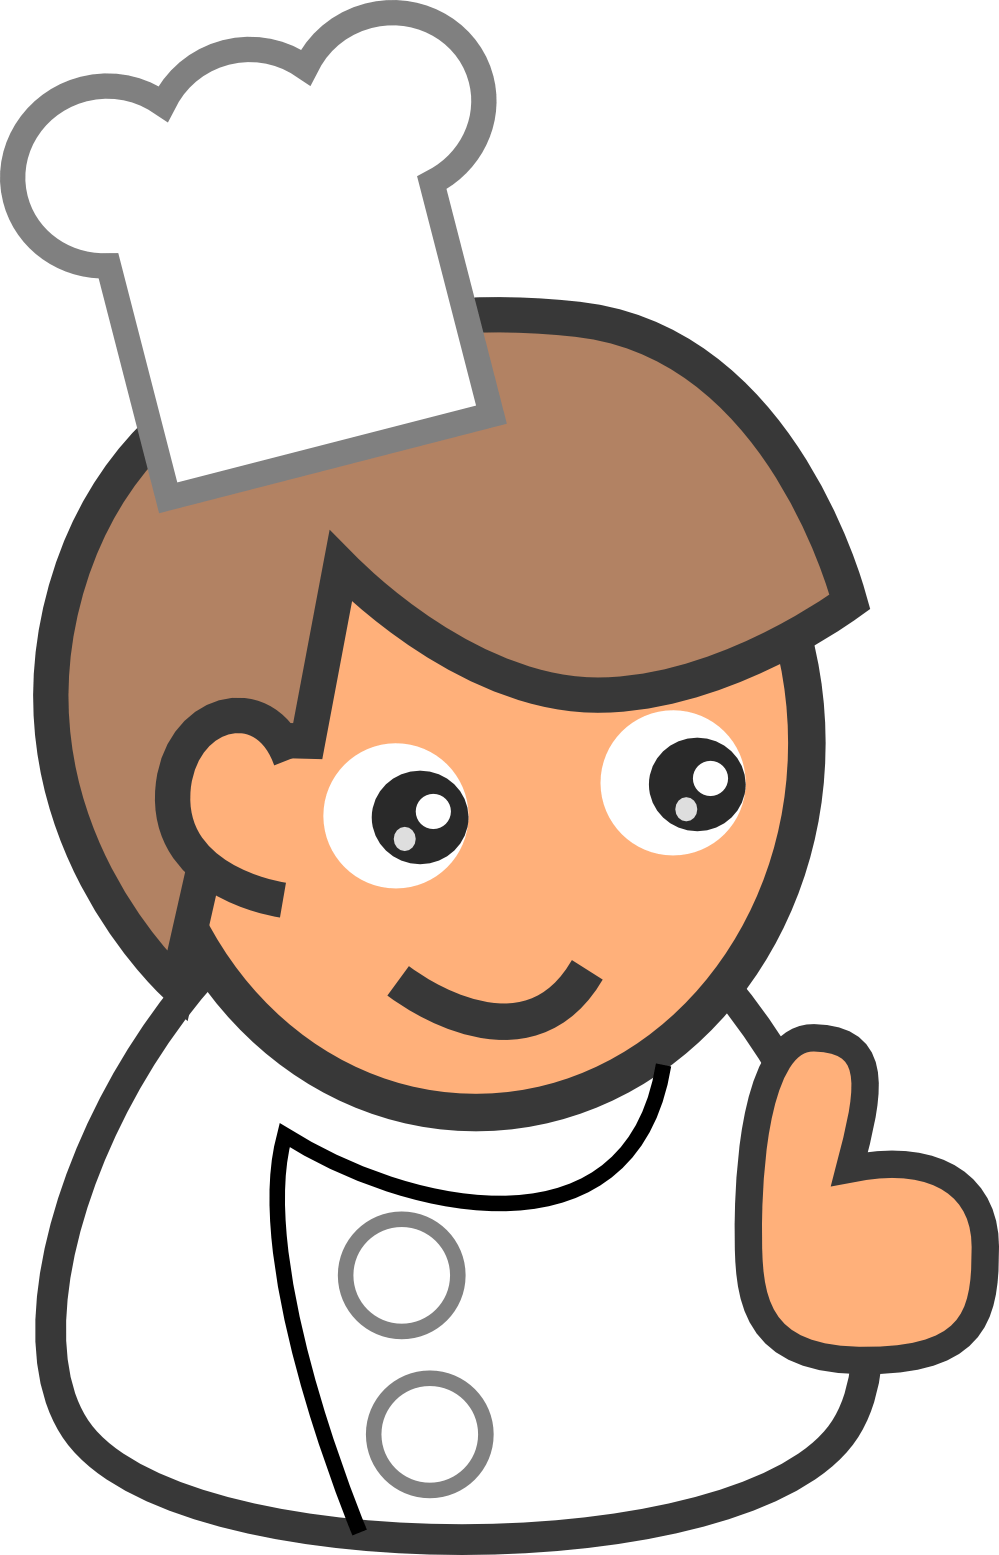 medium resolution of cooking clipart image 22639